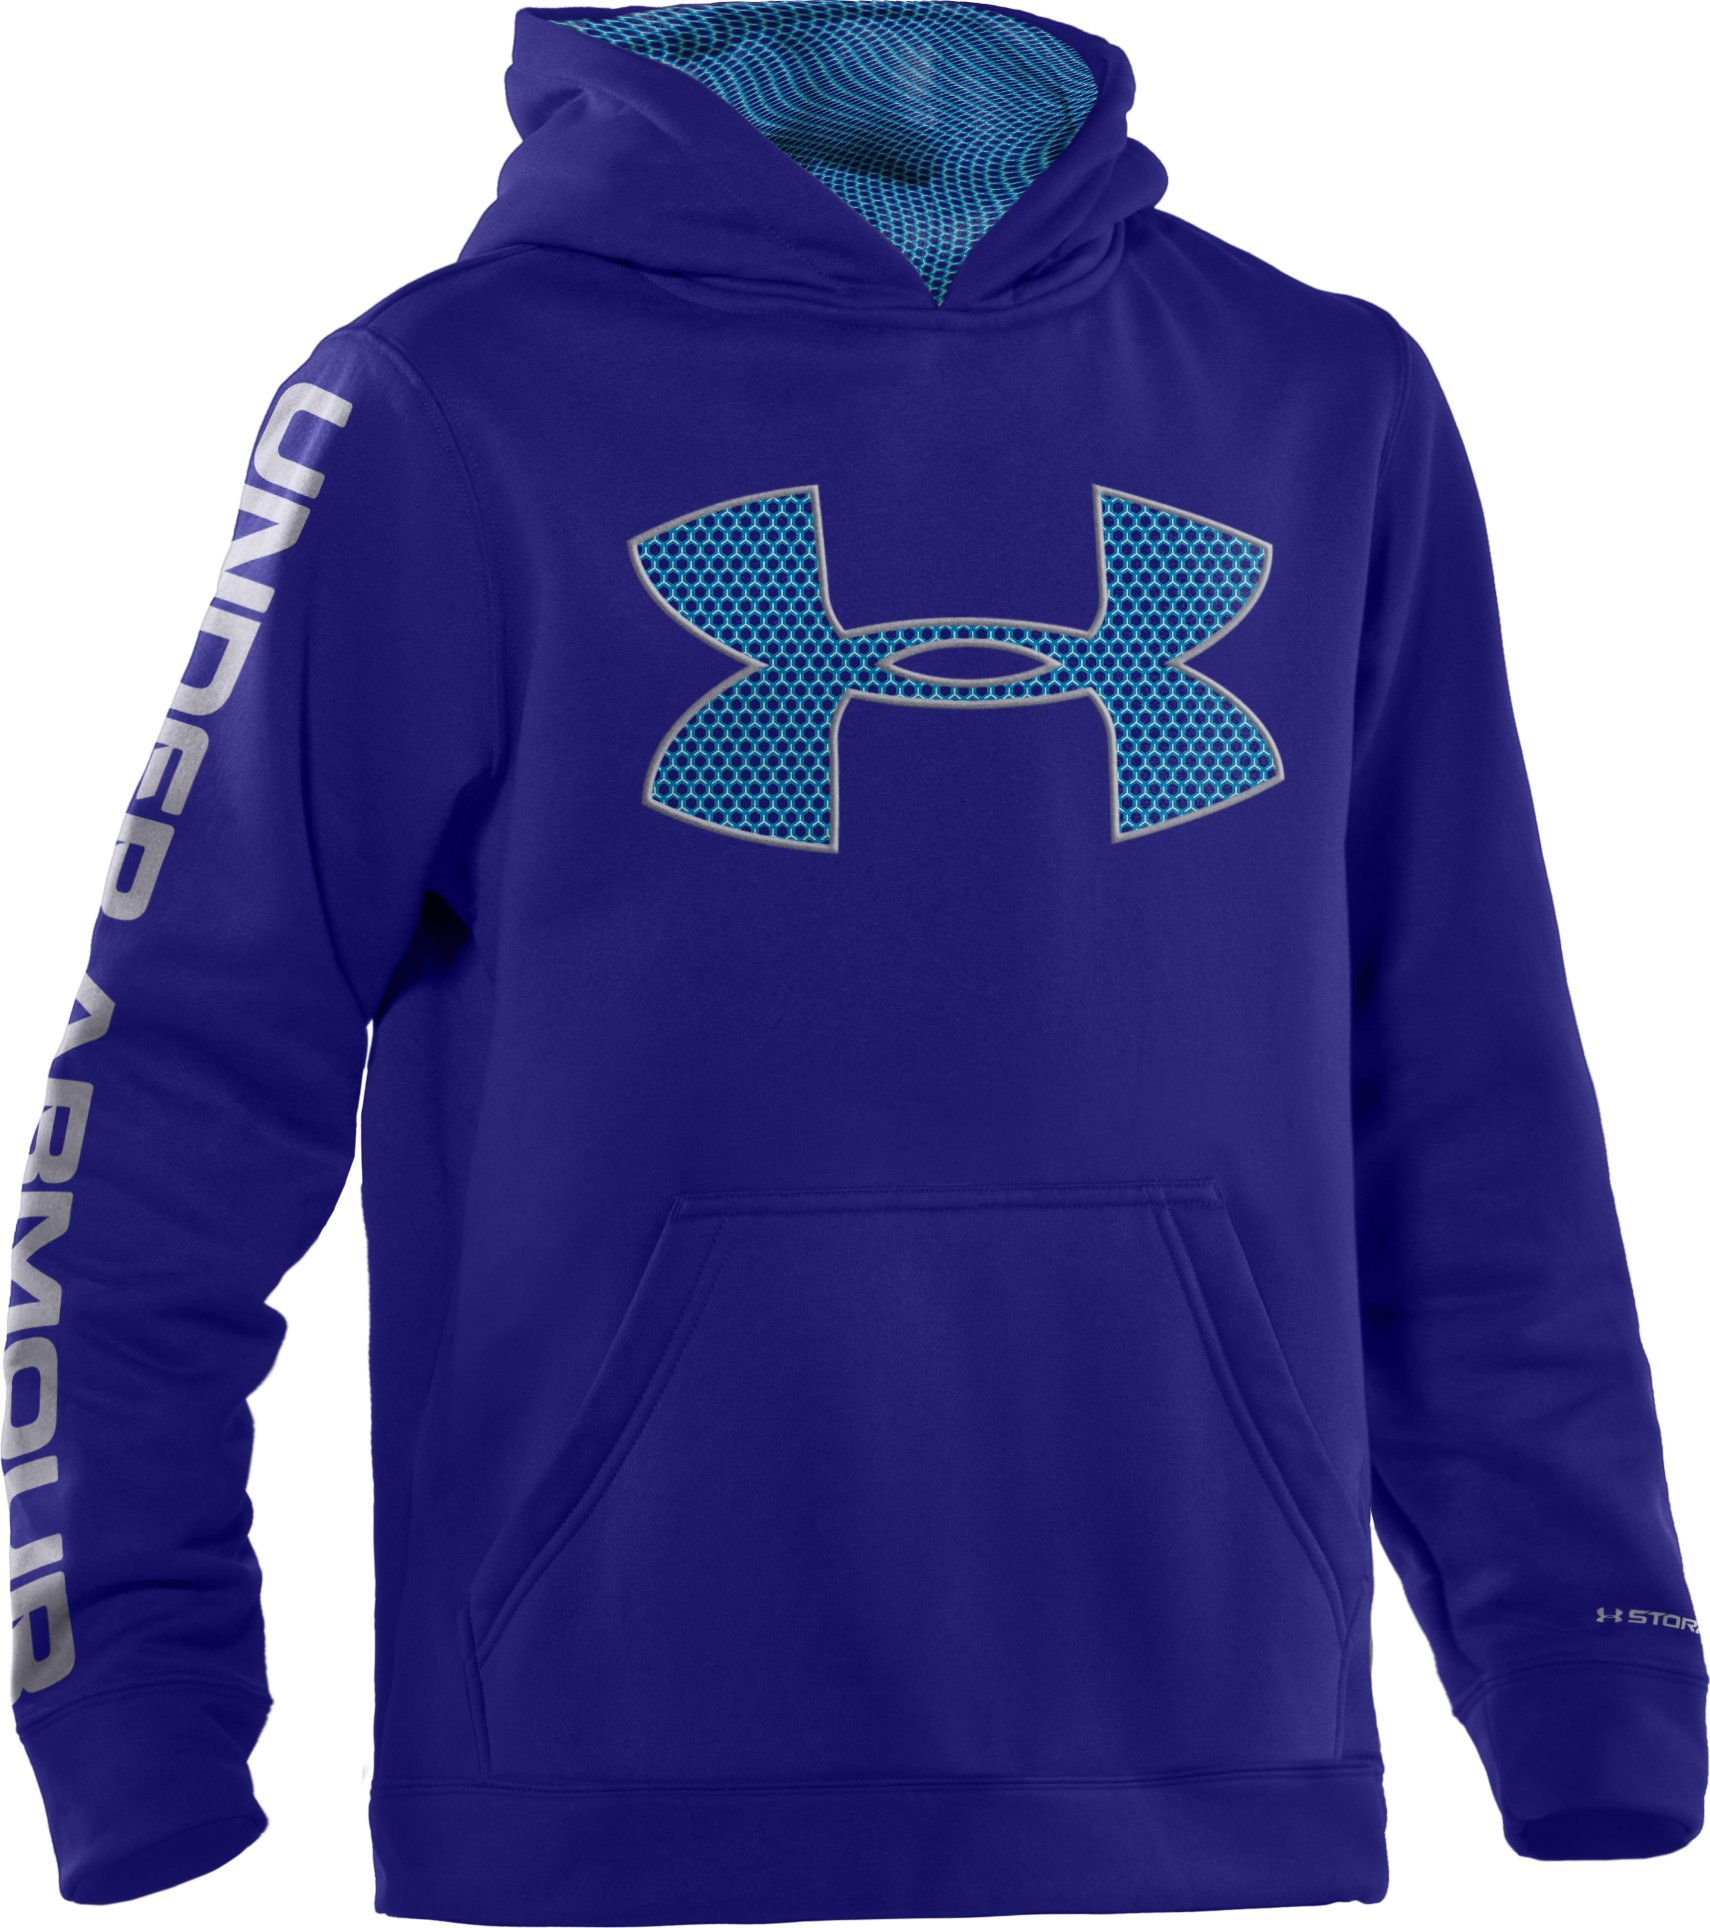 Boys' Armour® Fleece Storm Big Logo Pullover Hoodie, Caspian, zoomed image